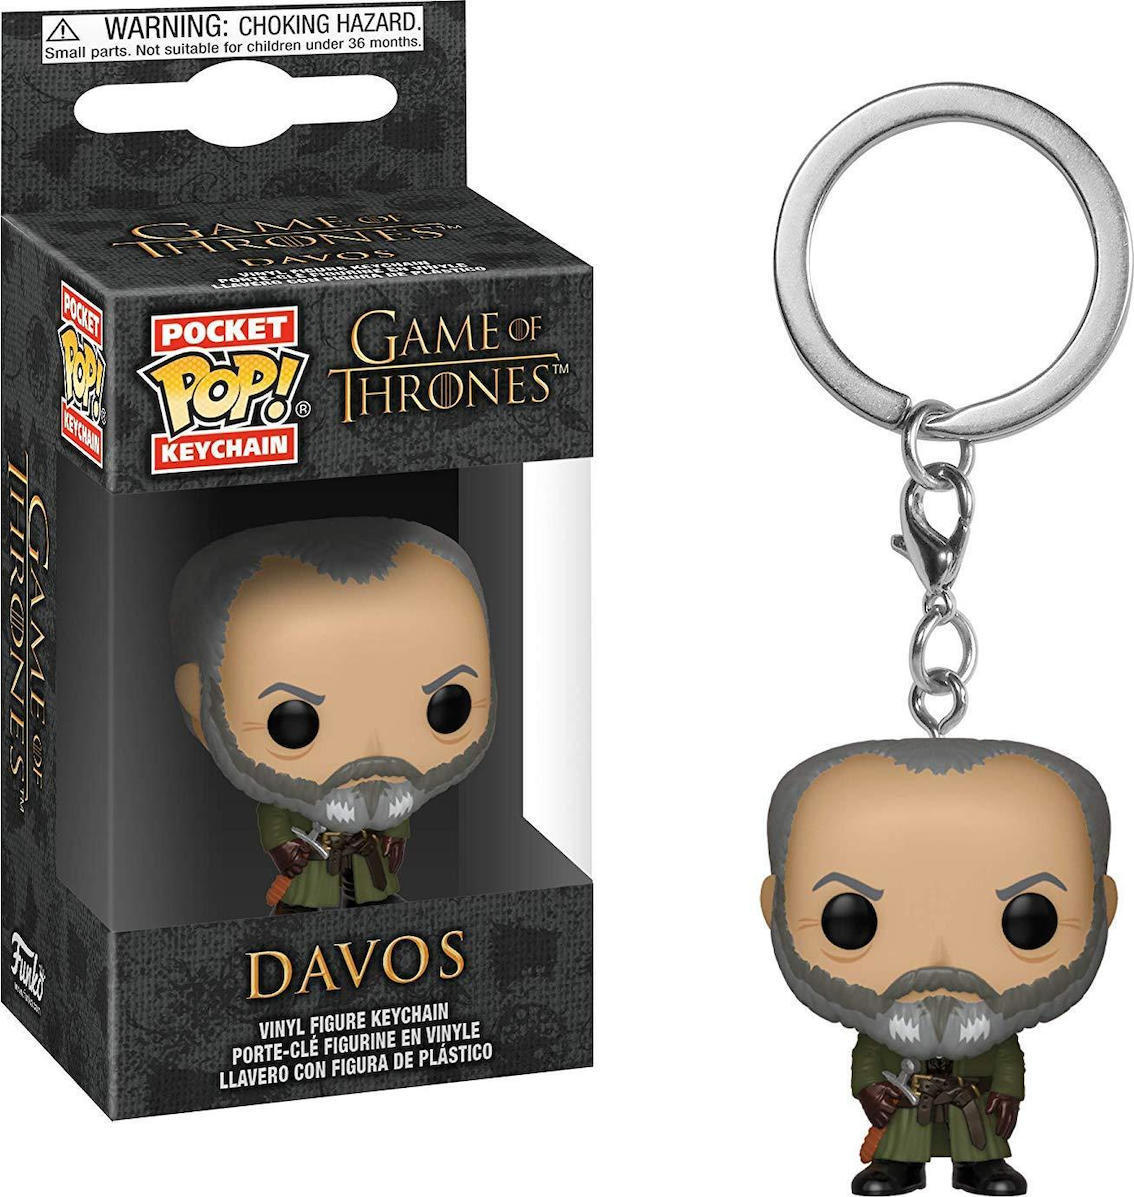 Pocket POP! Game of Thrones S10 - Davos Keychain